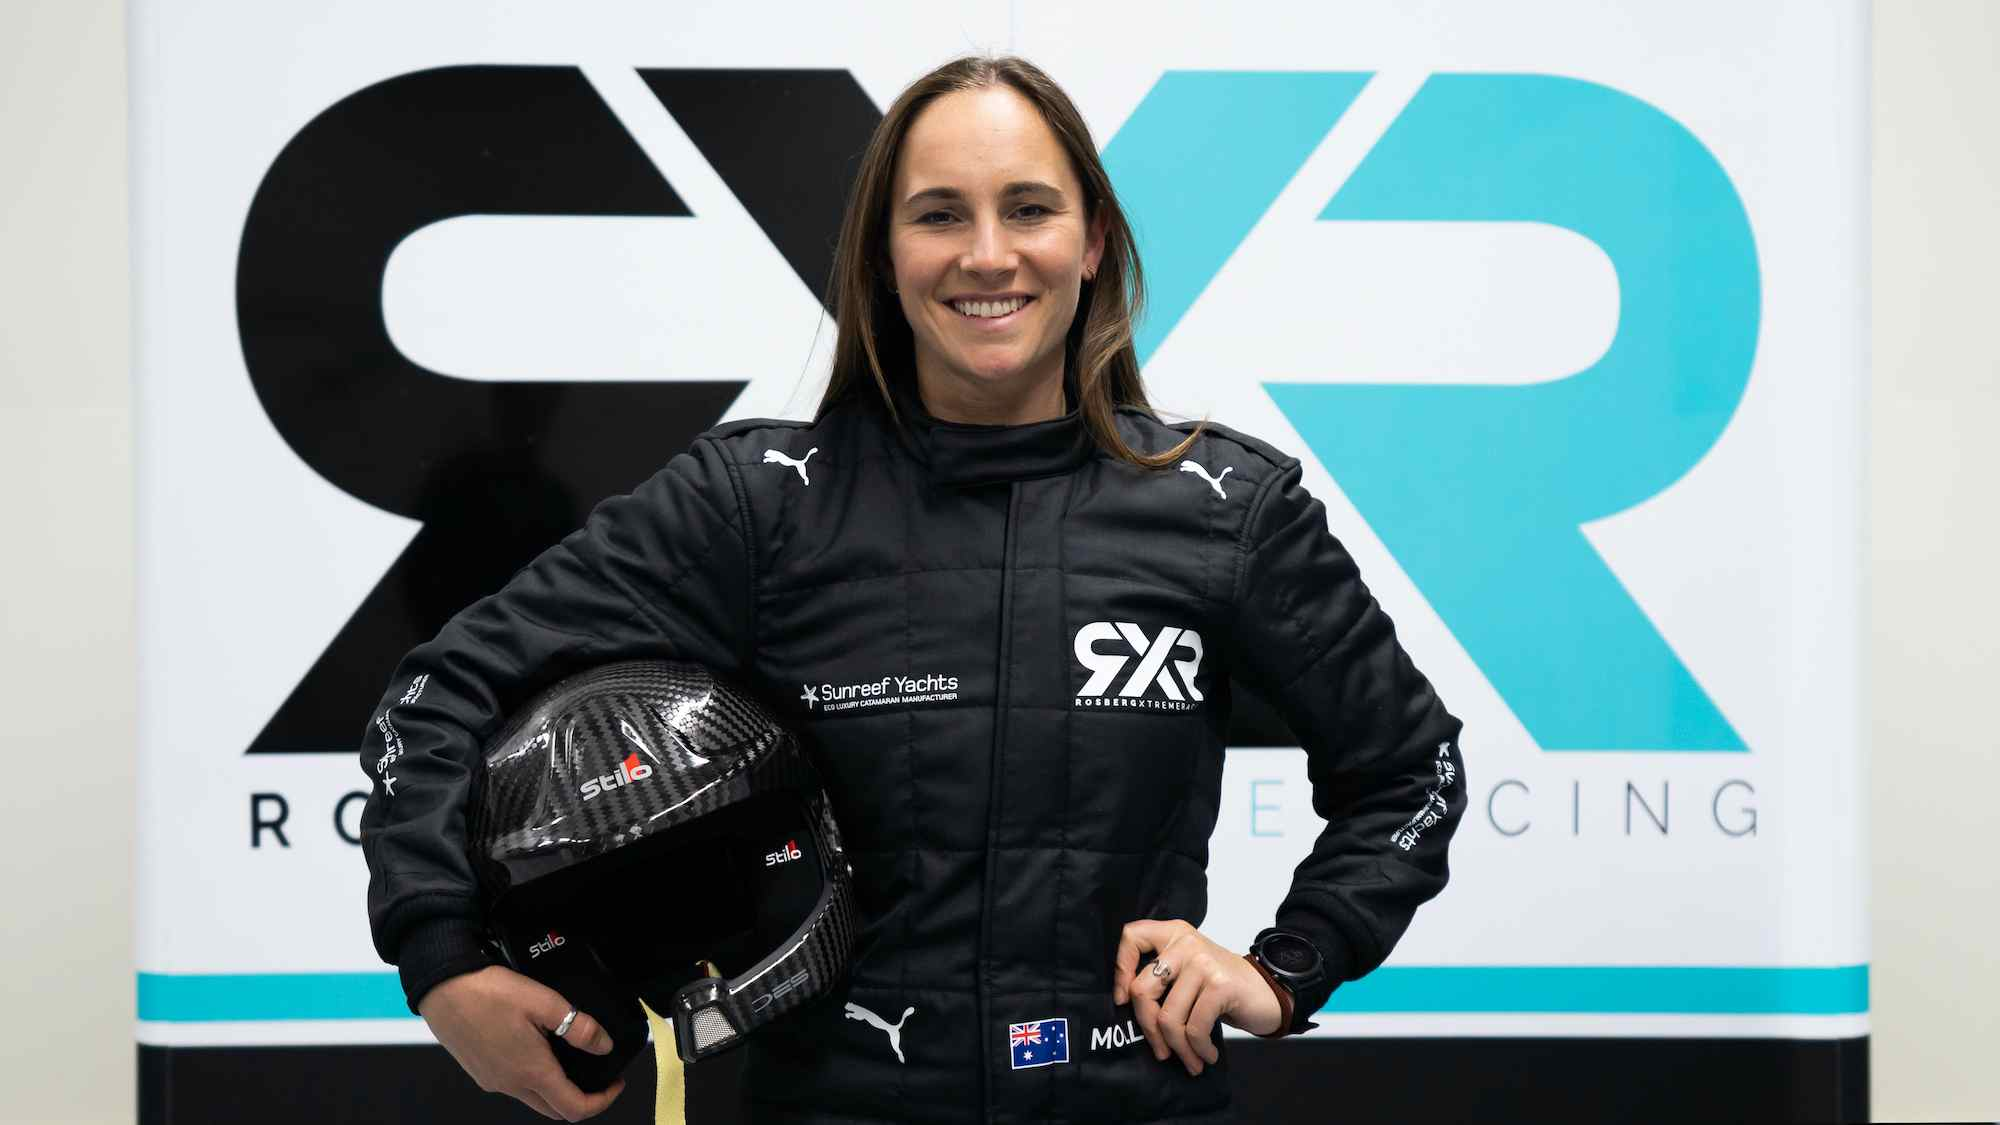 Nico Rosberg is proud to have Molly Taylor in his Extreme E team.